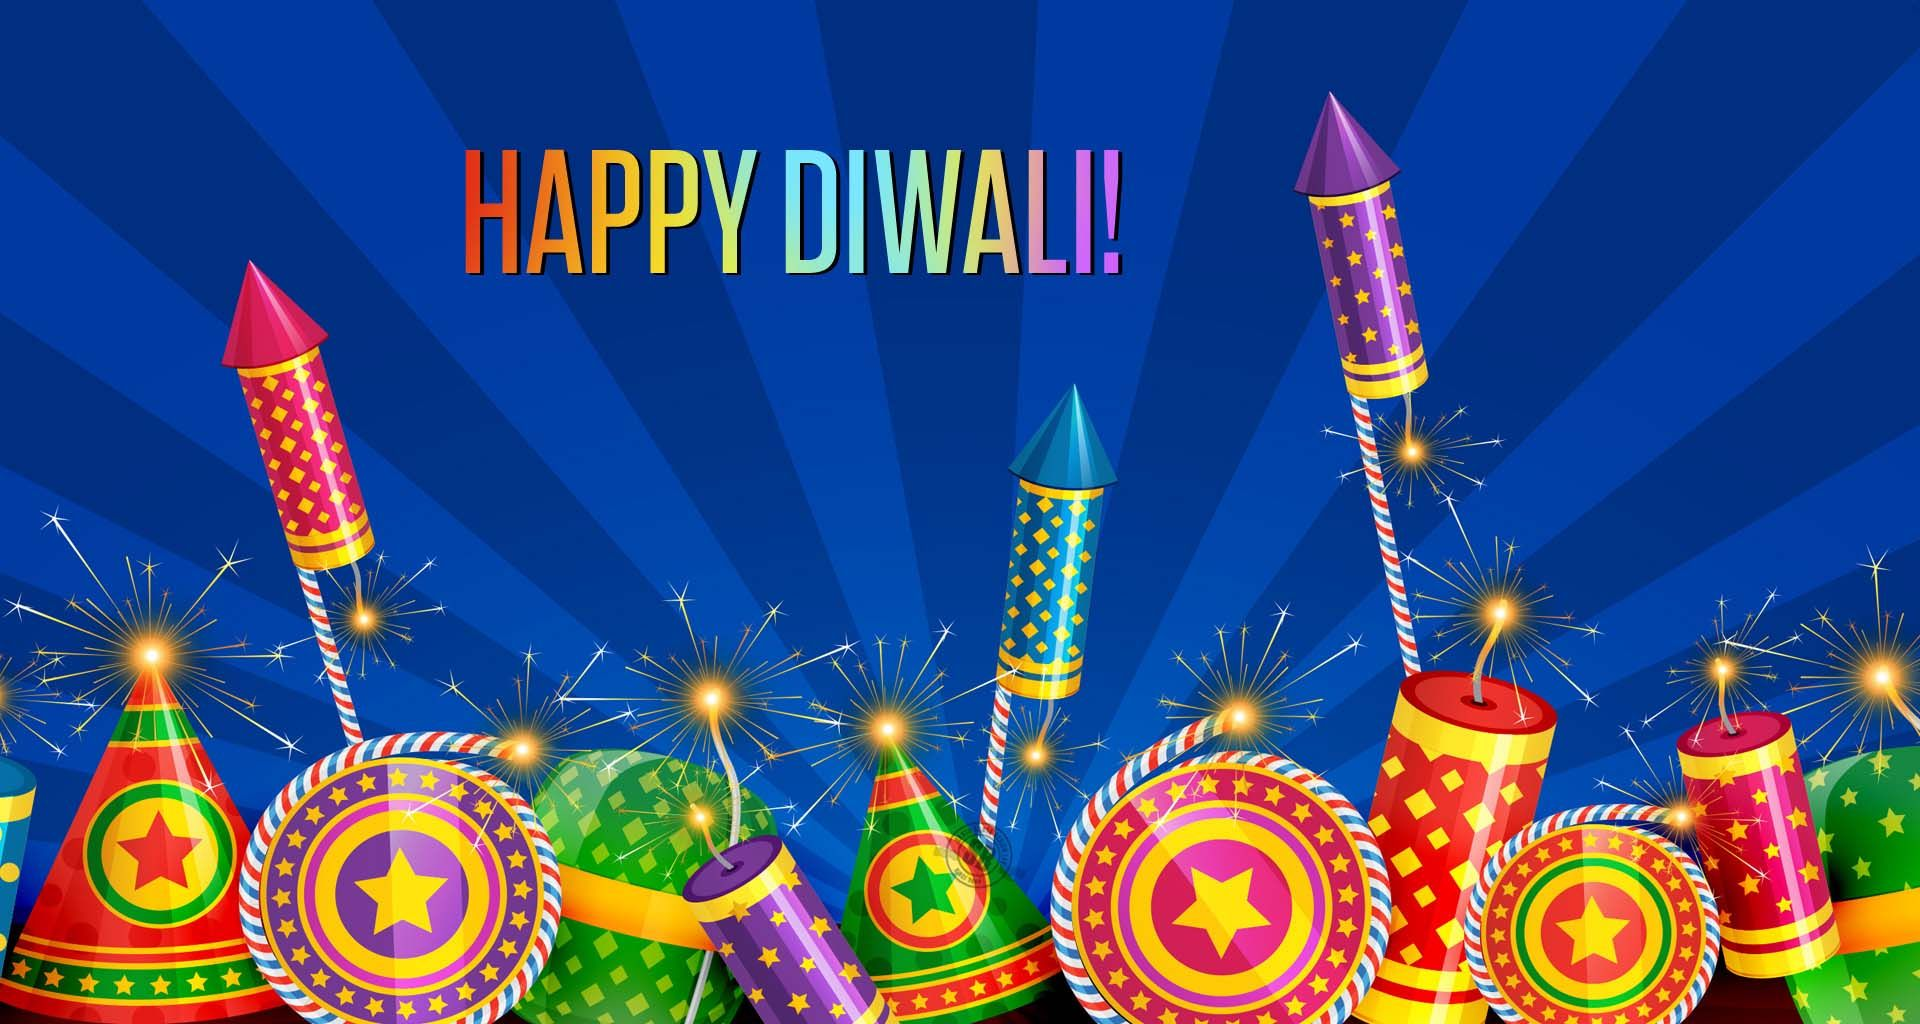 Diwali Crackers in Sky pics | HD Wallpapers | All Wallpapers ... for Diwali Fireworks Wallpapers  lp00lyp